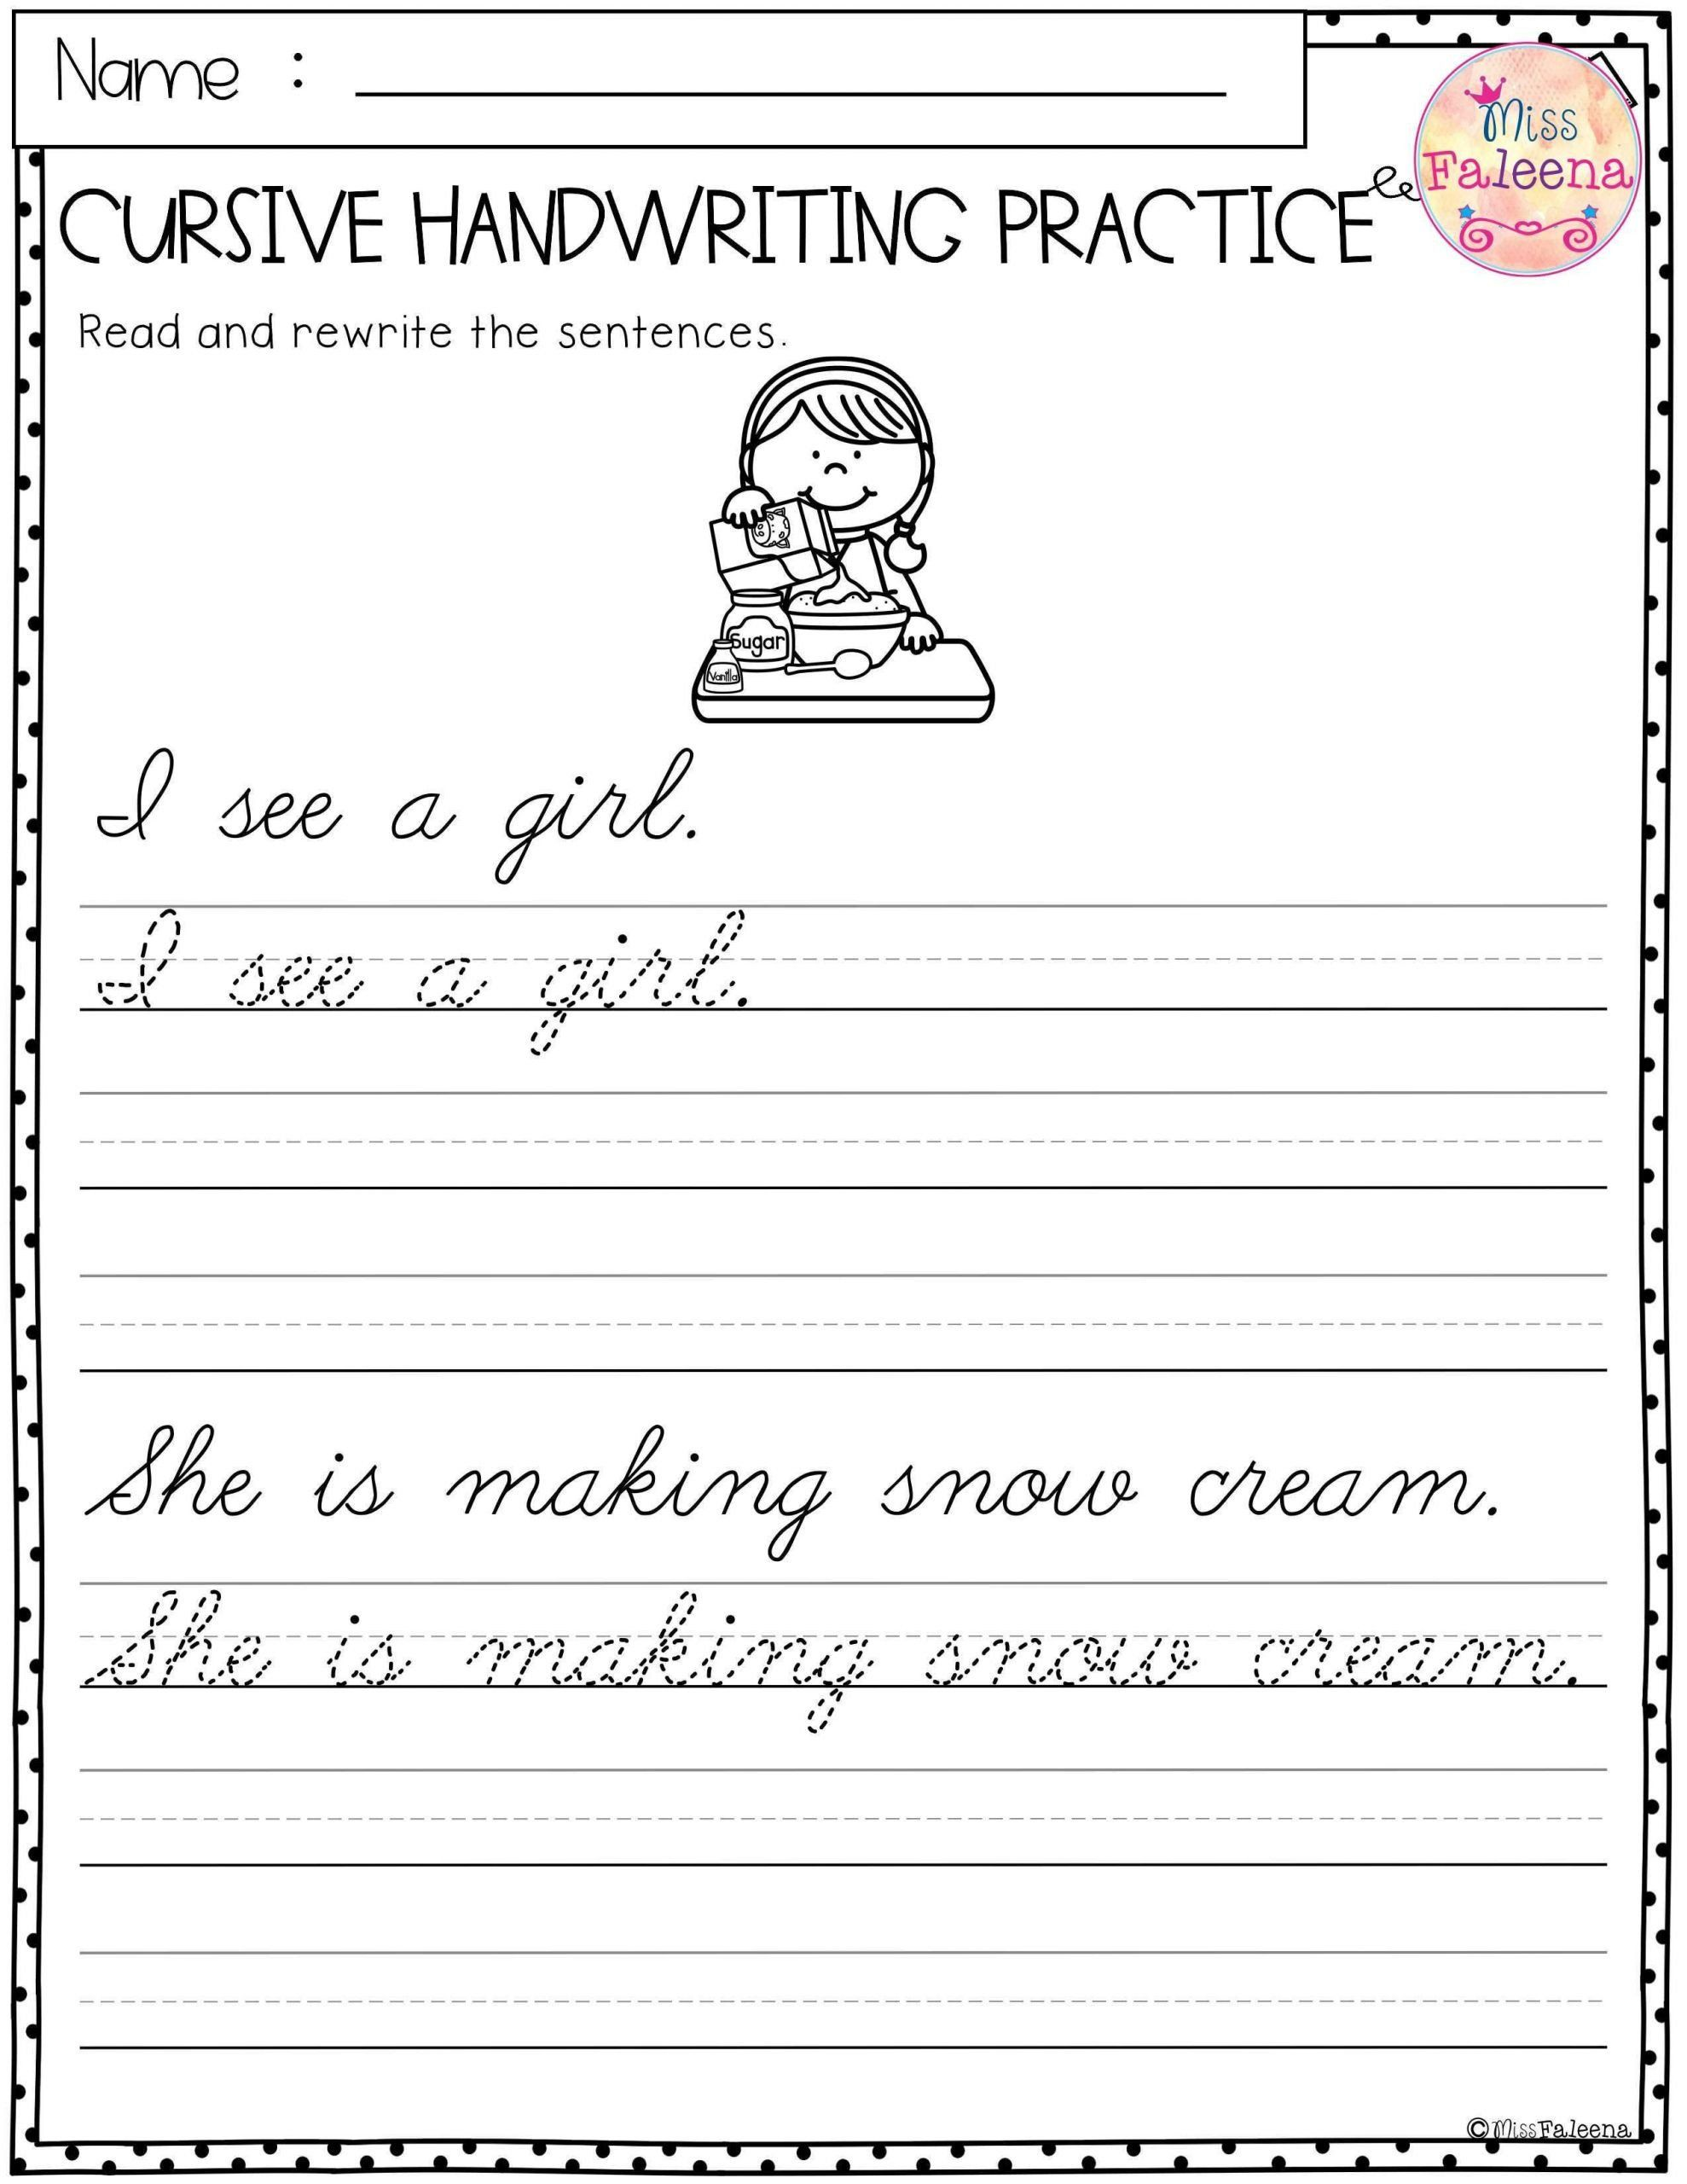 hight resolution of Handwriting Cursive Writing Worksheets 4th Grade   Printable Worksheets and  Activities for Teachers